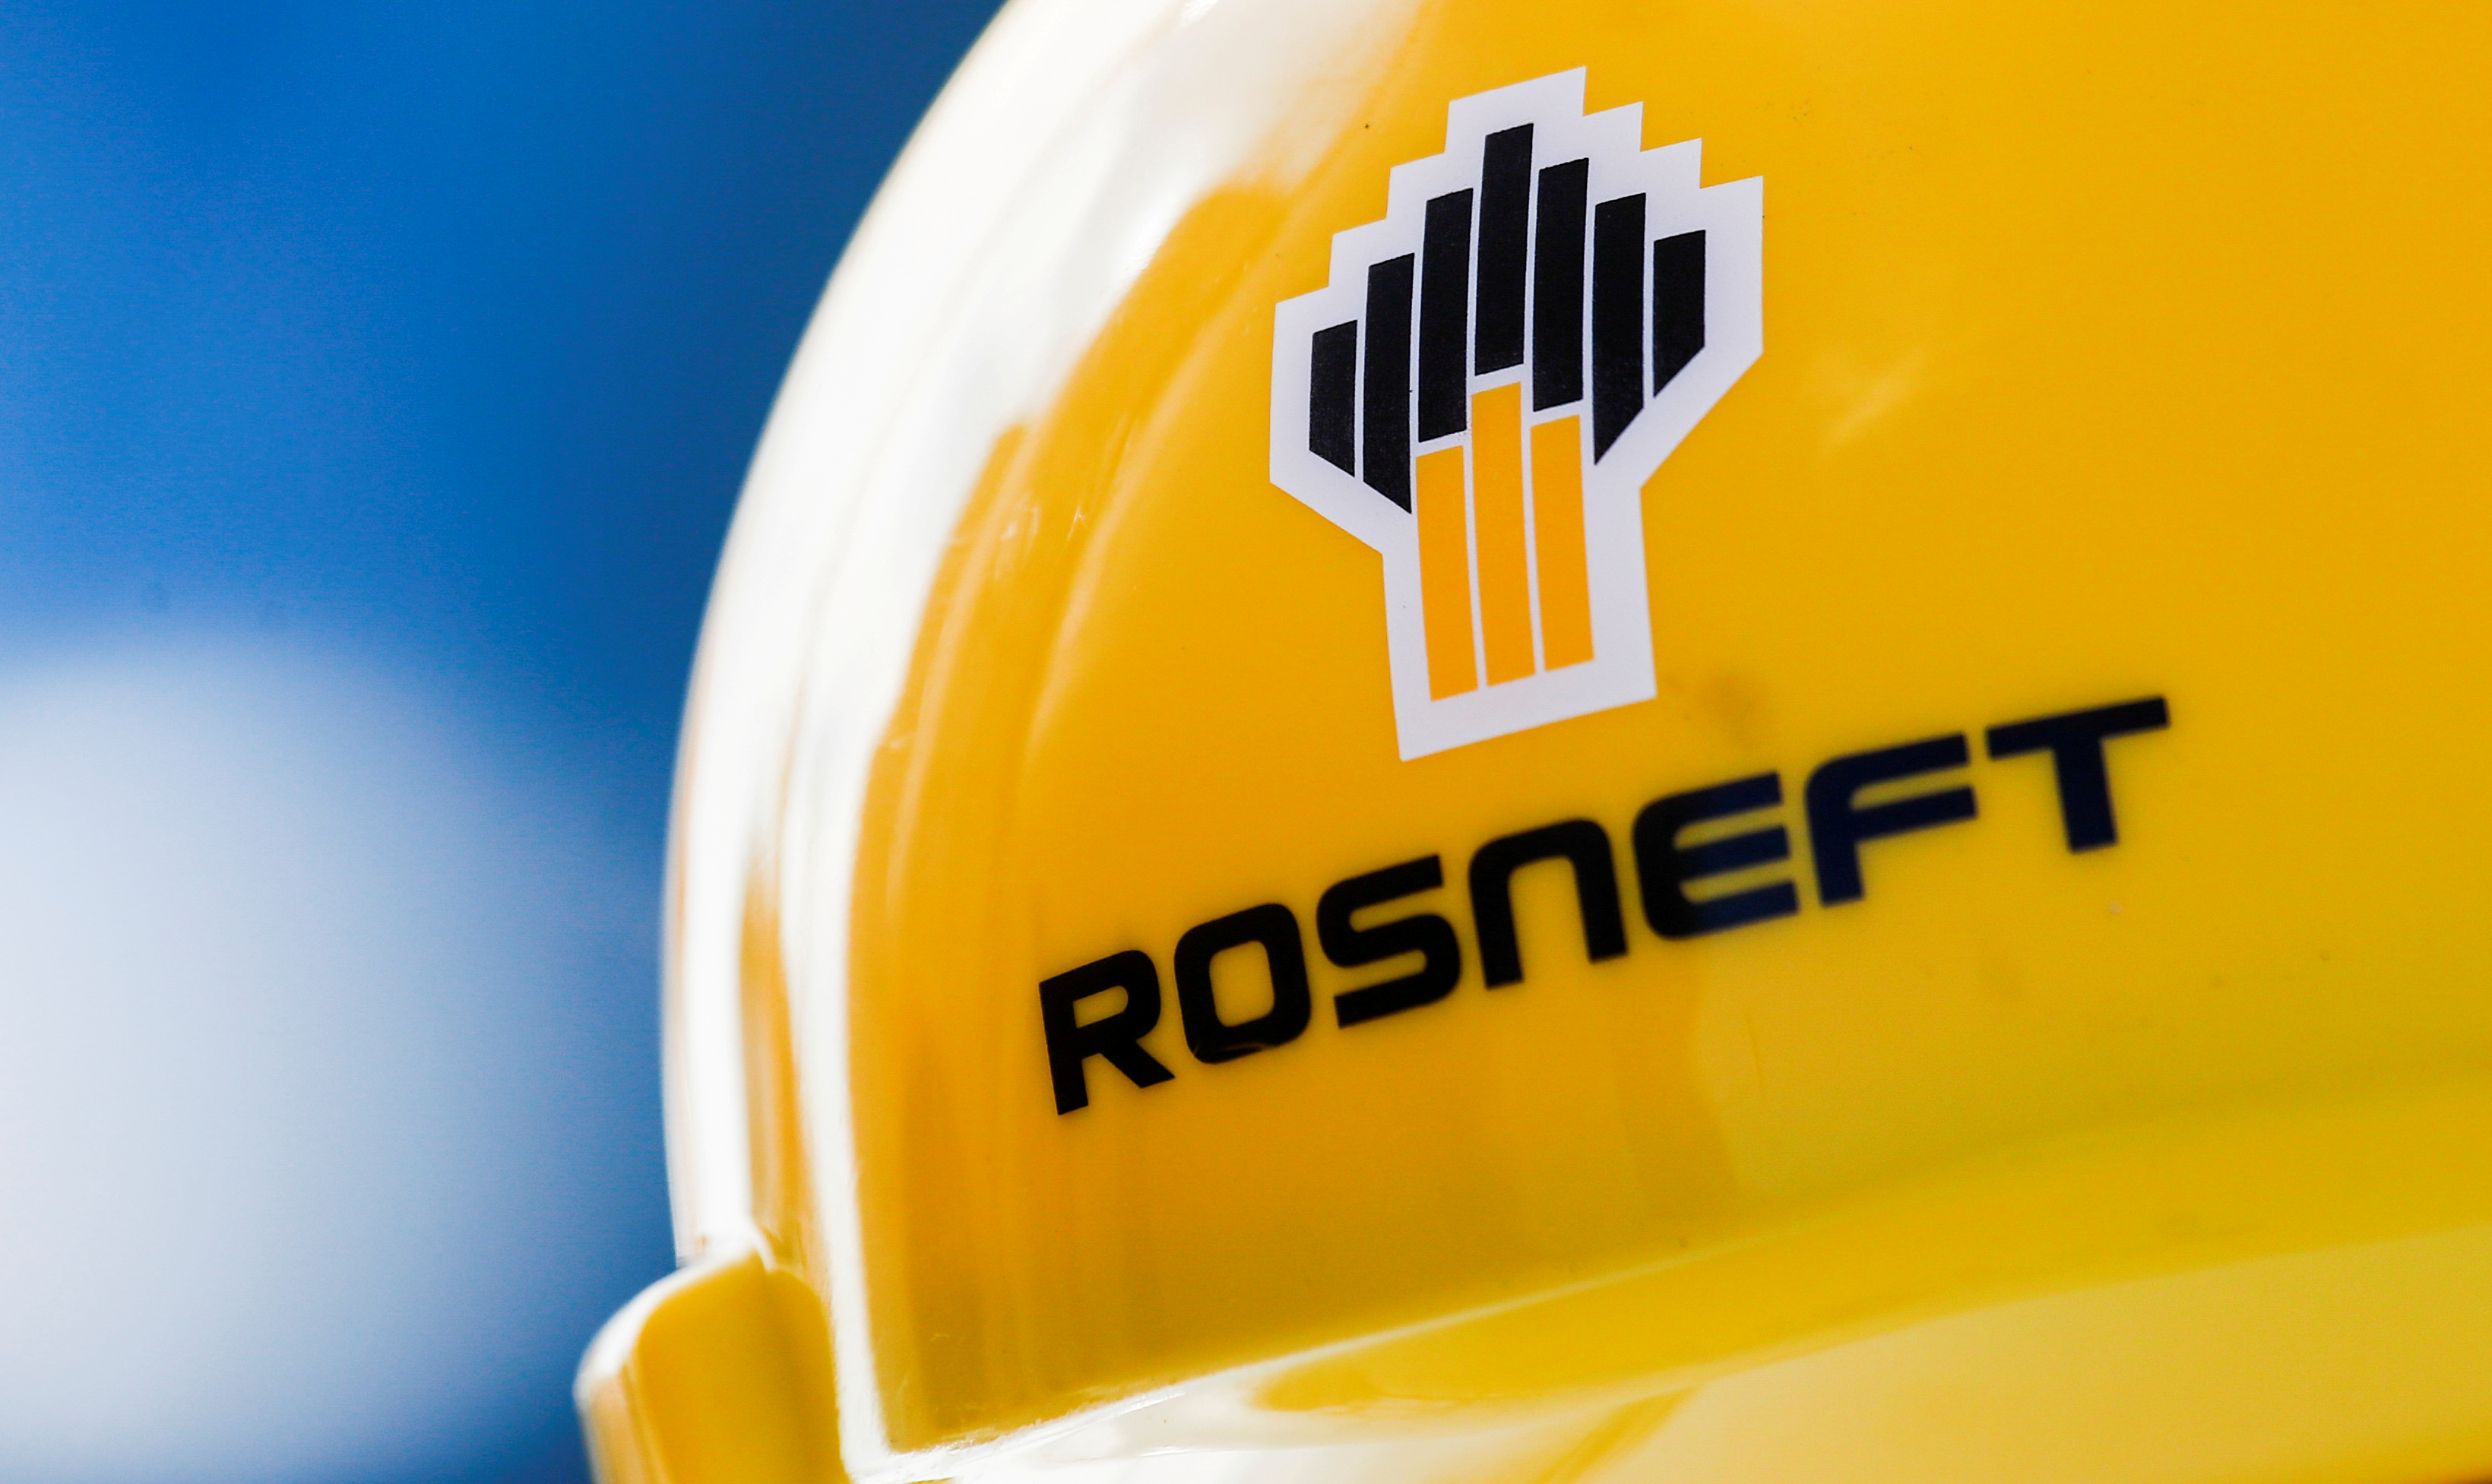 The Rosneft logo is pictured on a safety helmet in Vung Tau, Vietnam April 27, 2018. Picture taken April 27, 2018. REUTERS/Maxim Shemetov/File Photo